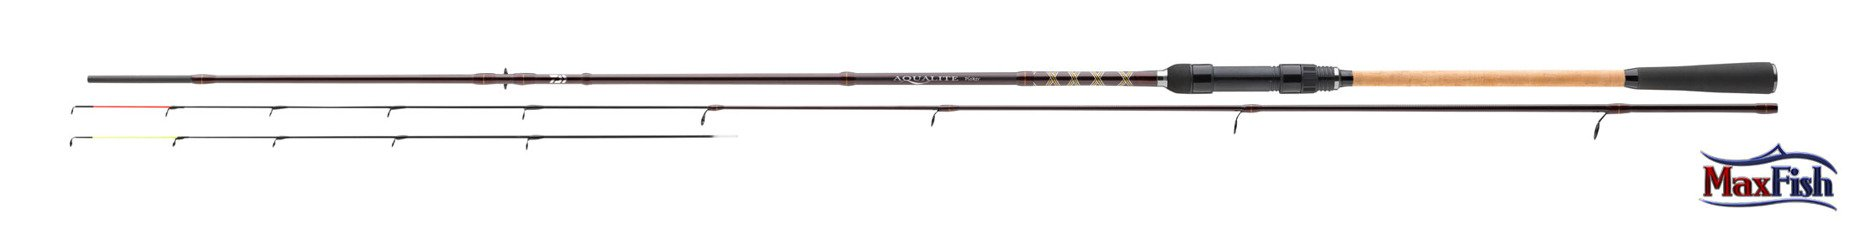 Daiwa Aqualite Picker  240cm -25g